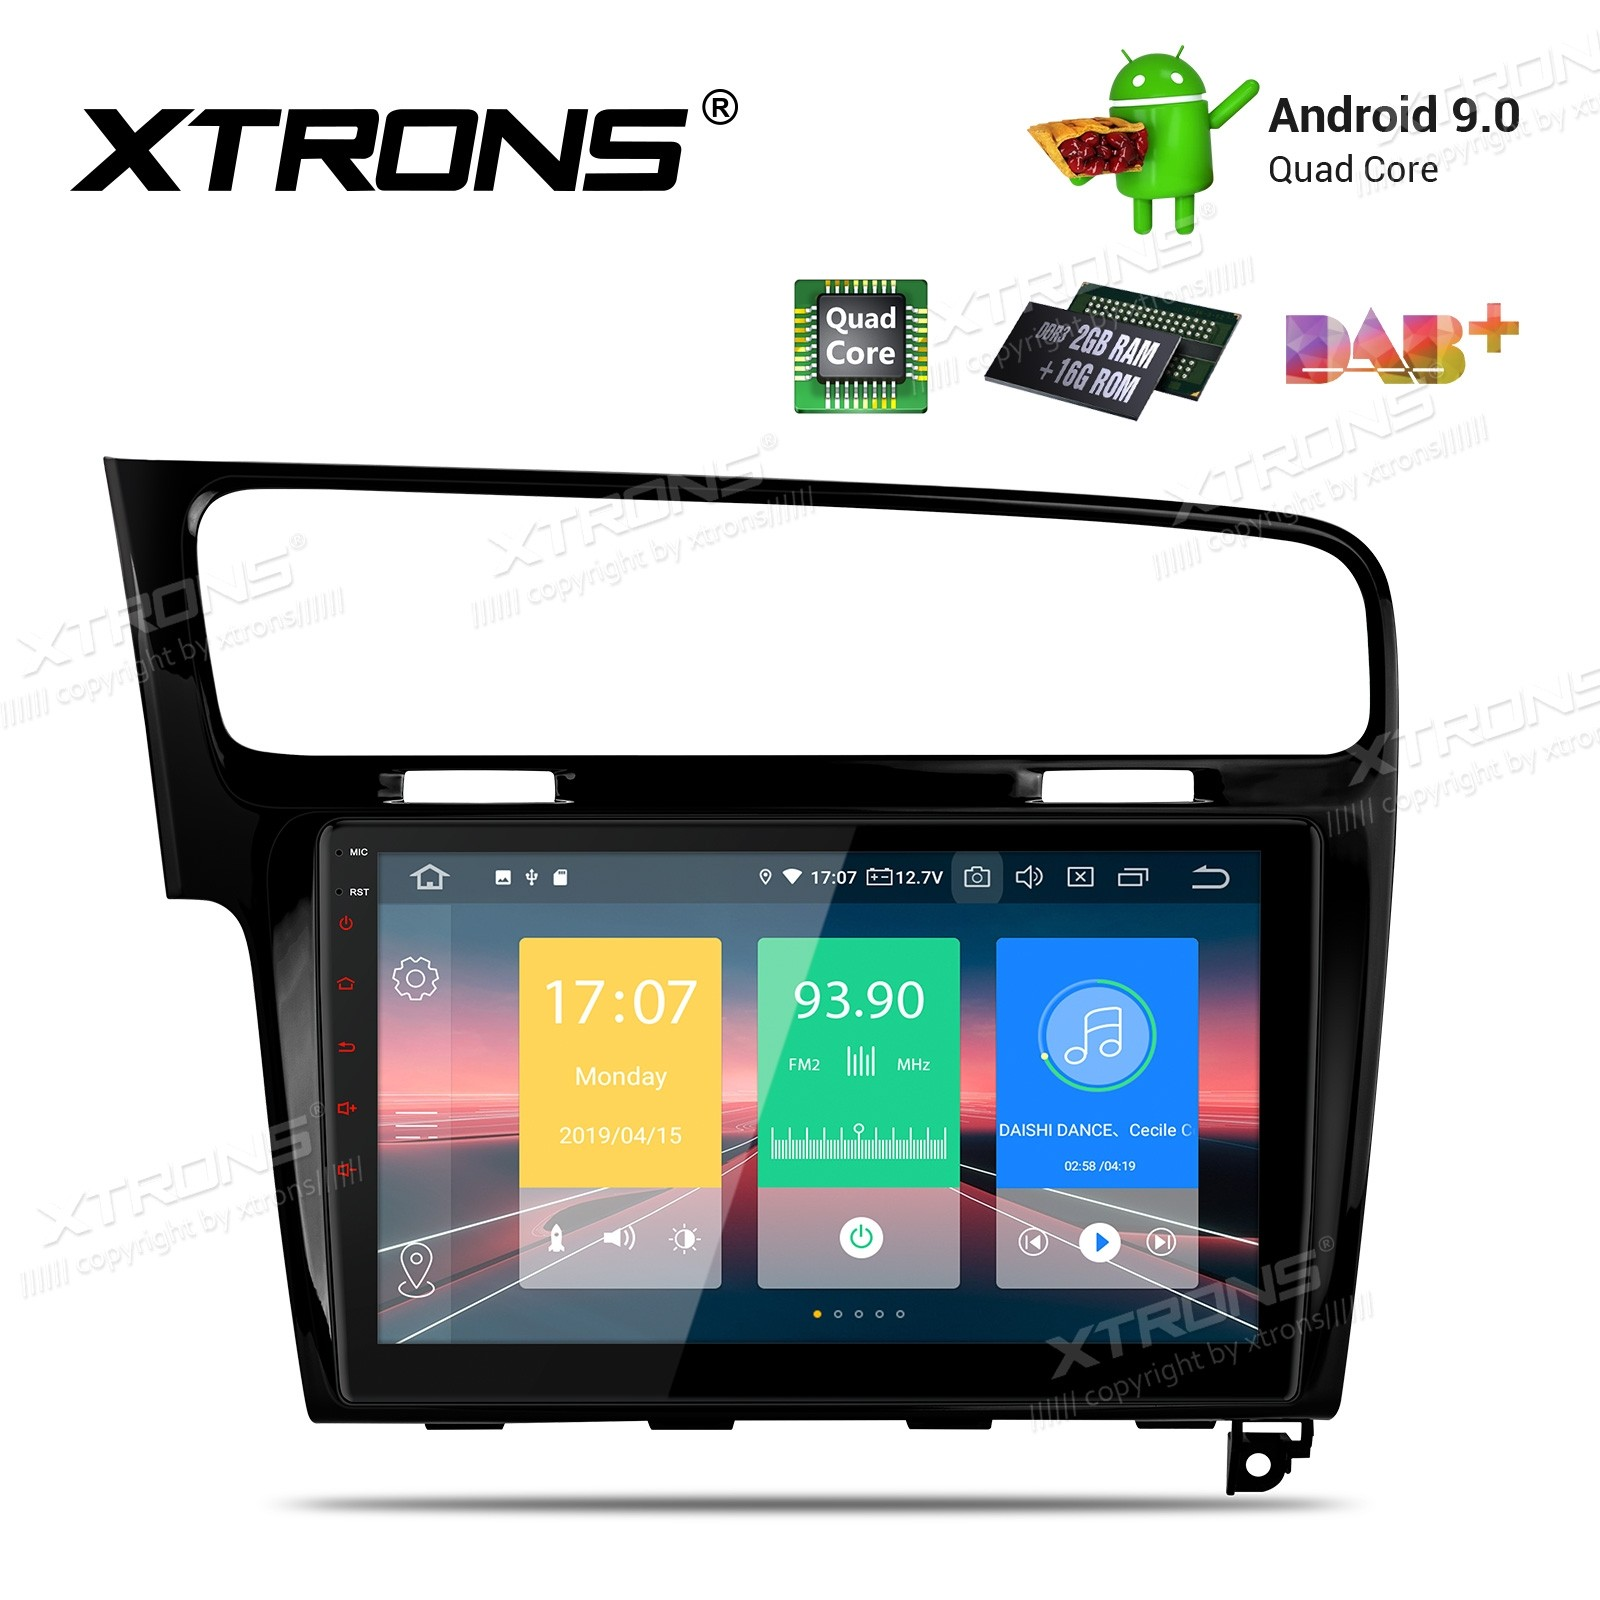 10.1 inch Android 9.0 Plug-and-Play Design Car Stereo Multimedia Navigation System Custom Fit for Volkswagen Golf 7 Left Hand Vehicles